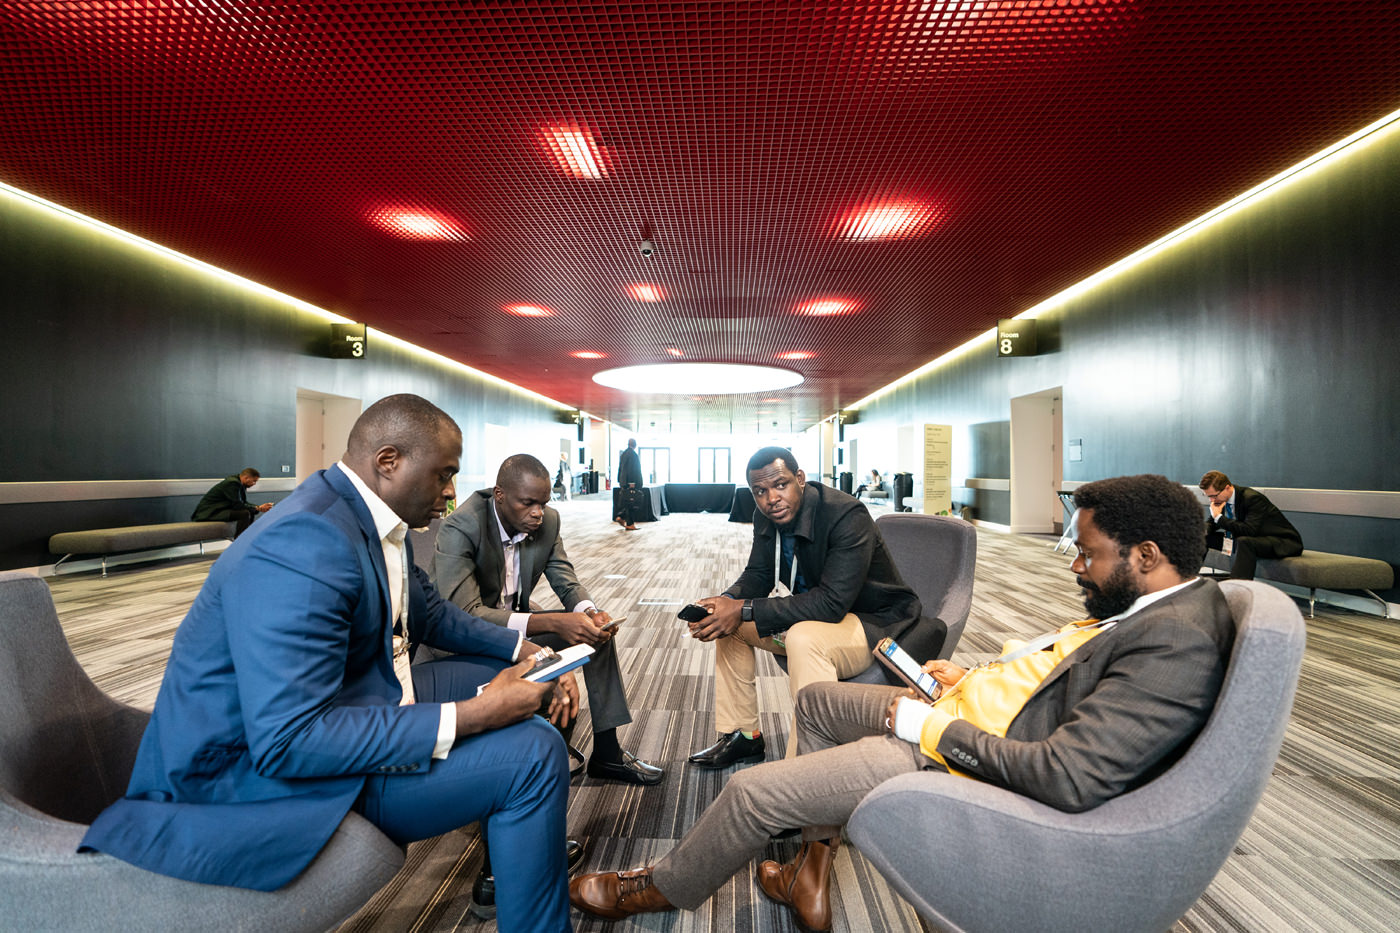 Delegates network between sessions at the CFA Conference in the Capital Suites ExCel London